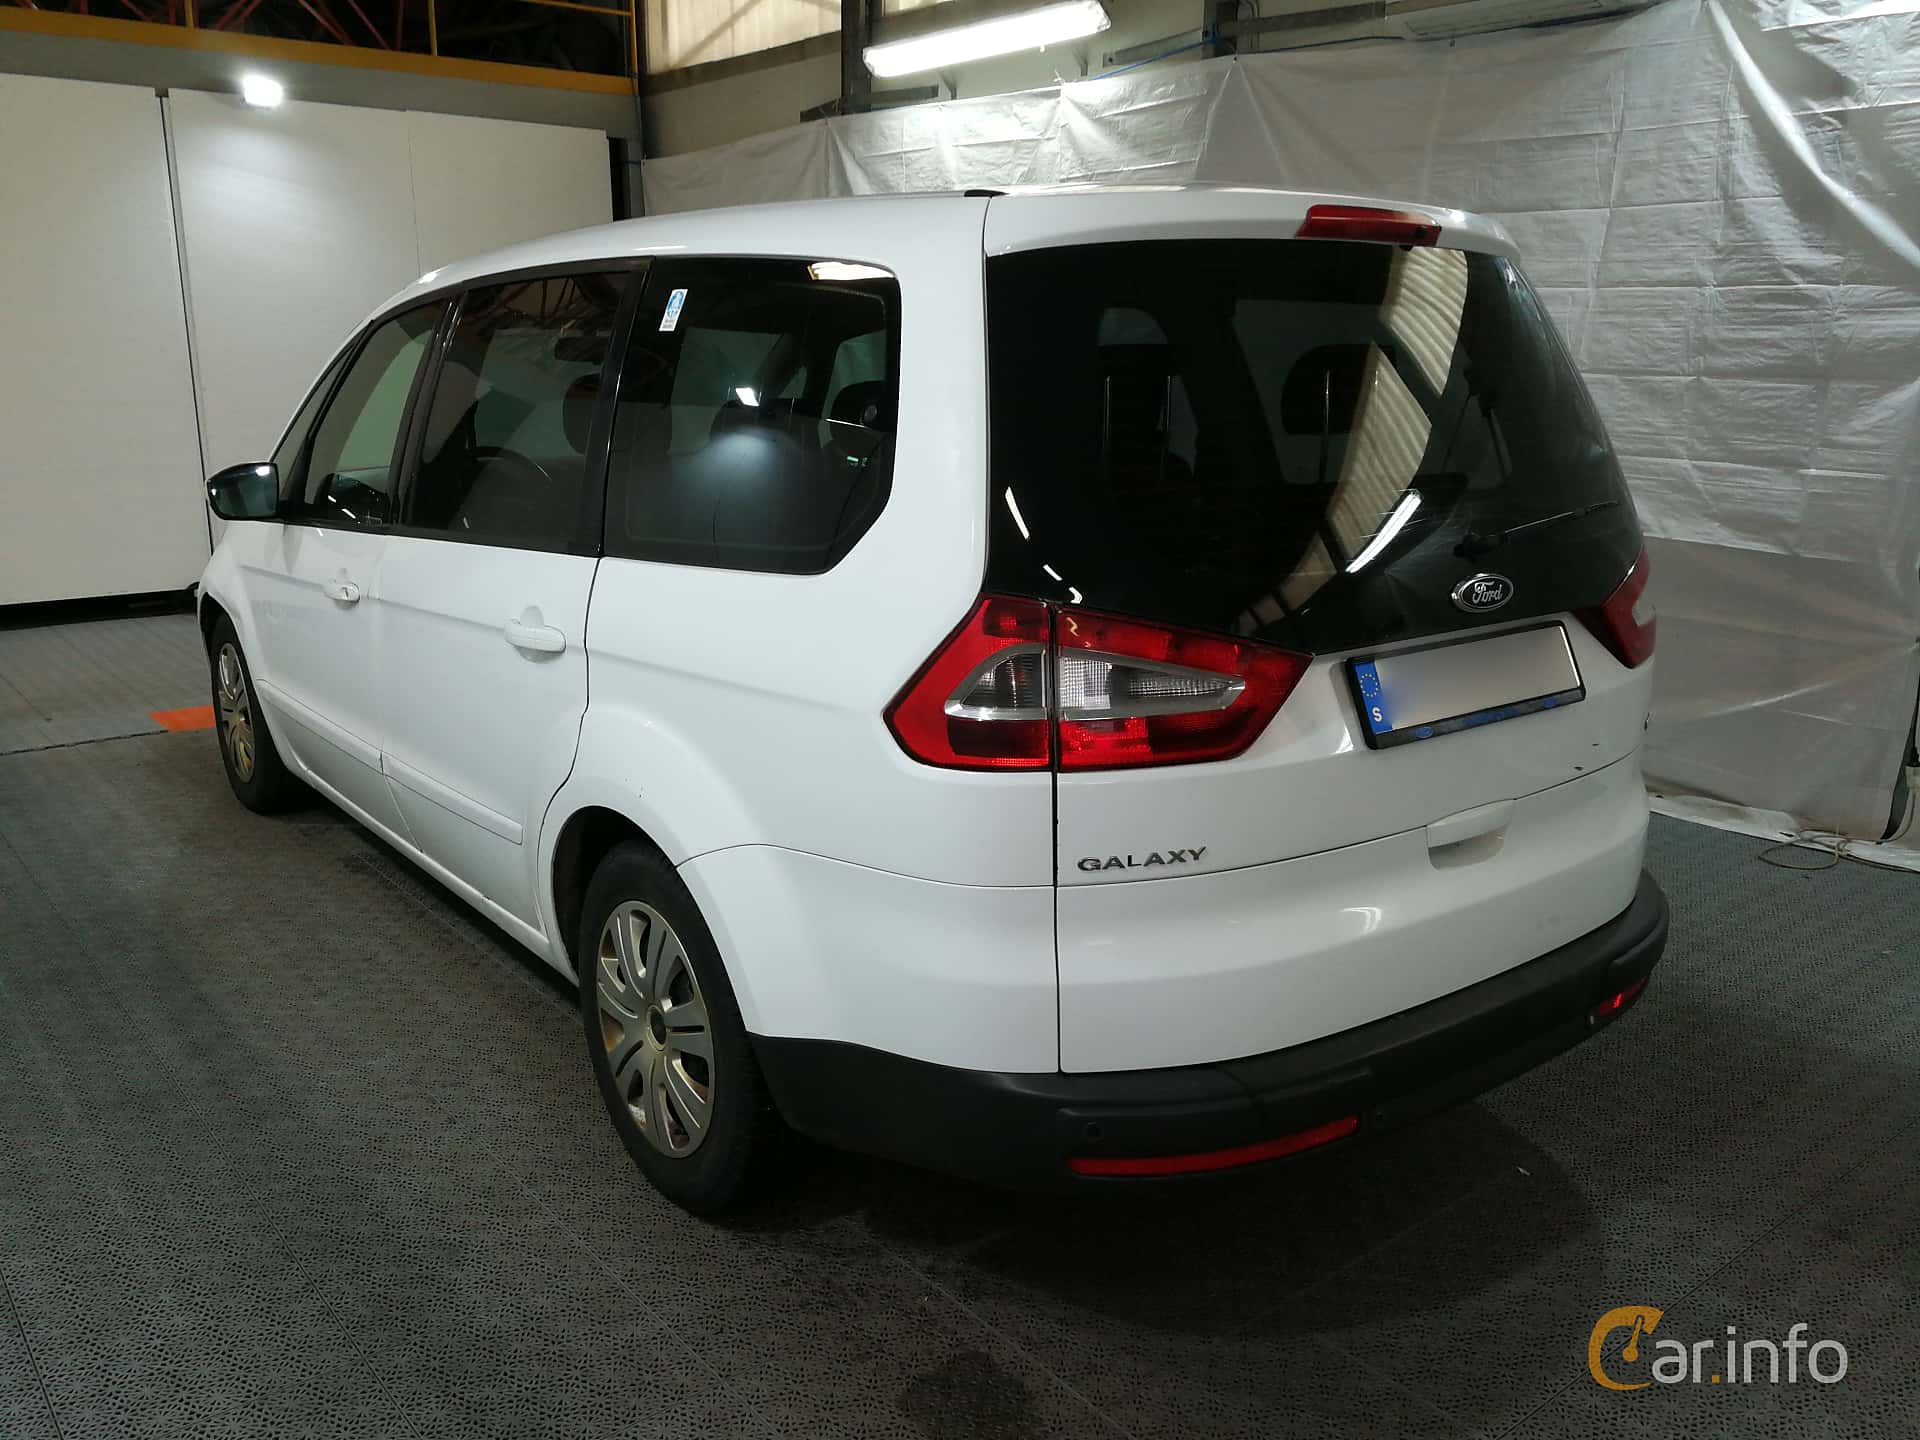 Ford Galaxy 2.0 TDCi Durashift CVT, 130hp, 2008